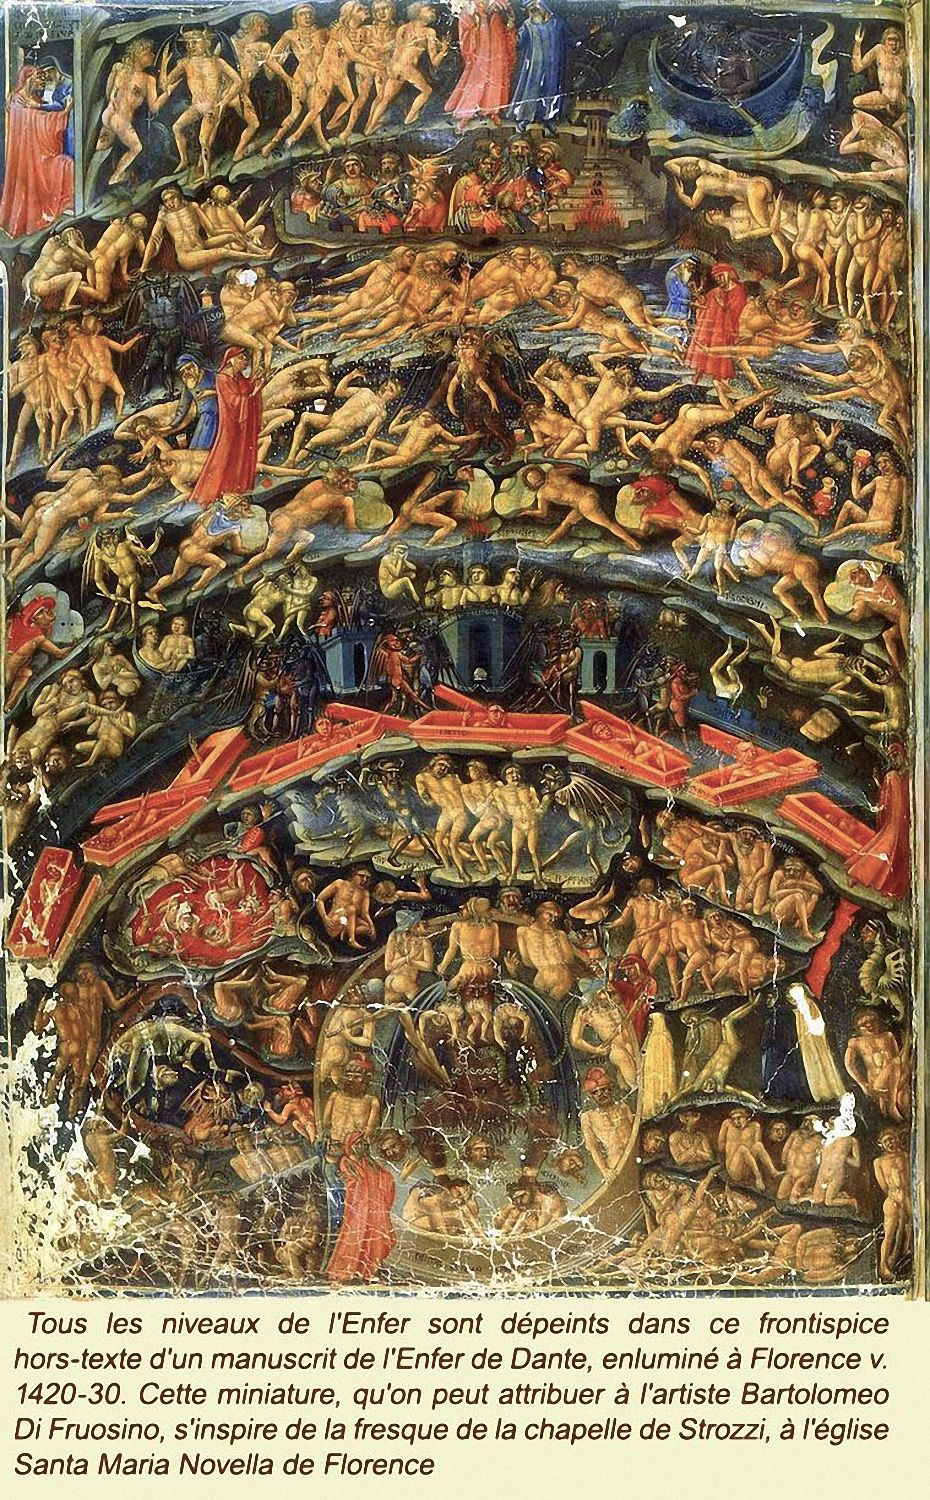 File:Sandro Botticelli - Inferno, Canto XVIII (detail ... |Dantes Inferno Painting Botticelli